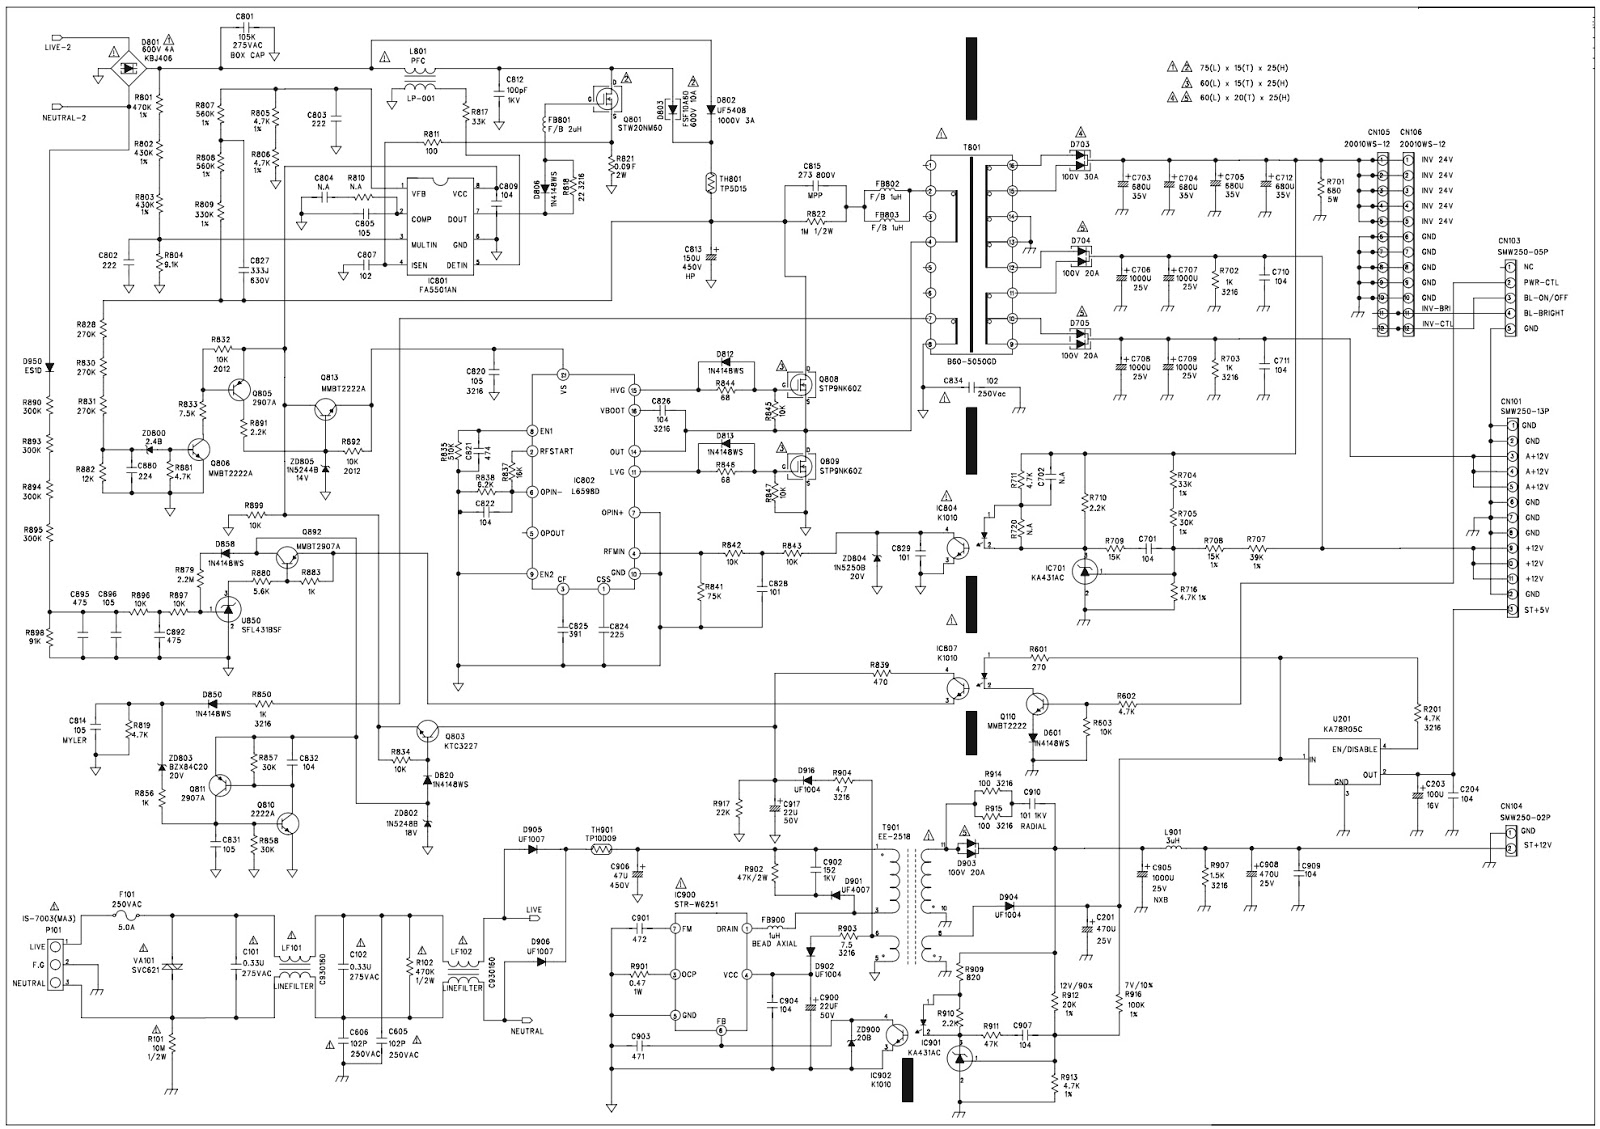 lcd tv schematic diagrams wiring diagram toolbox lg television schematic diagram lg 26h1dc1 lcd tv smps [ 1600 x 1129 Pixel ]